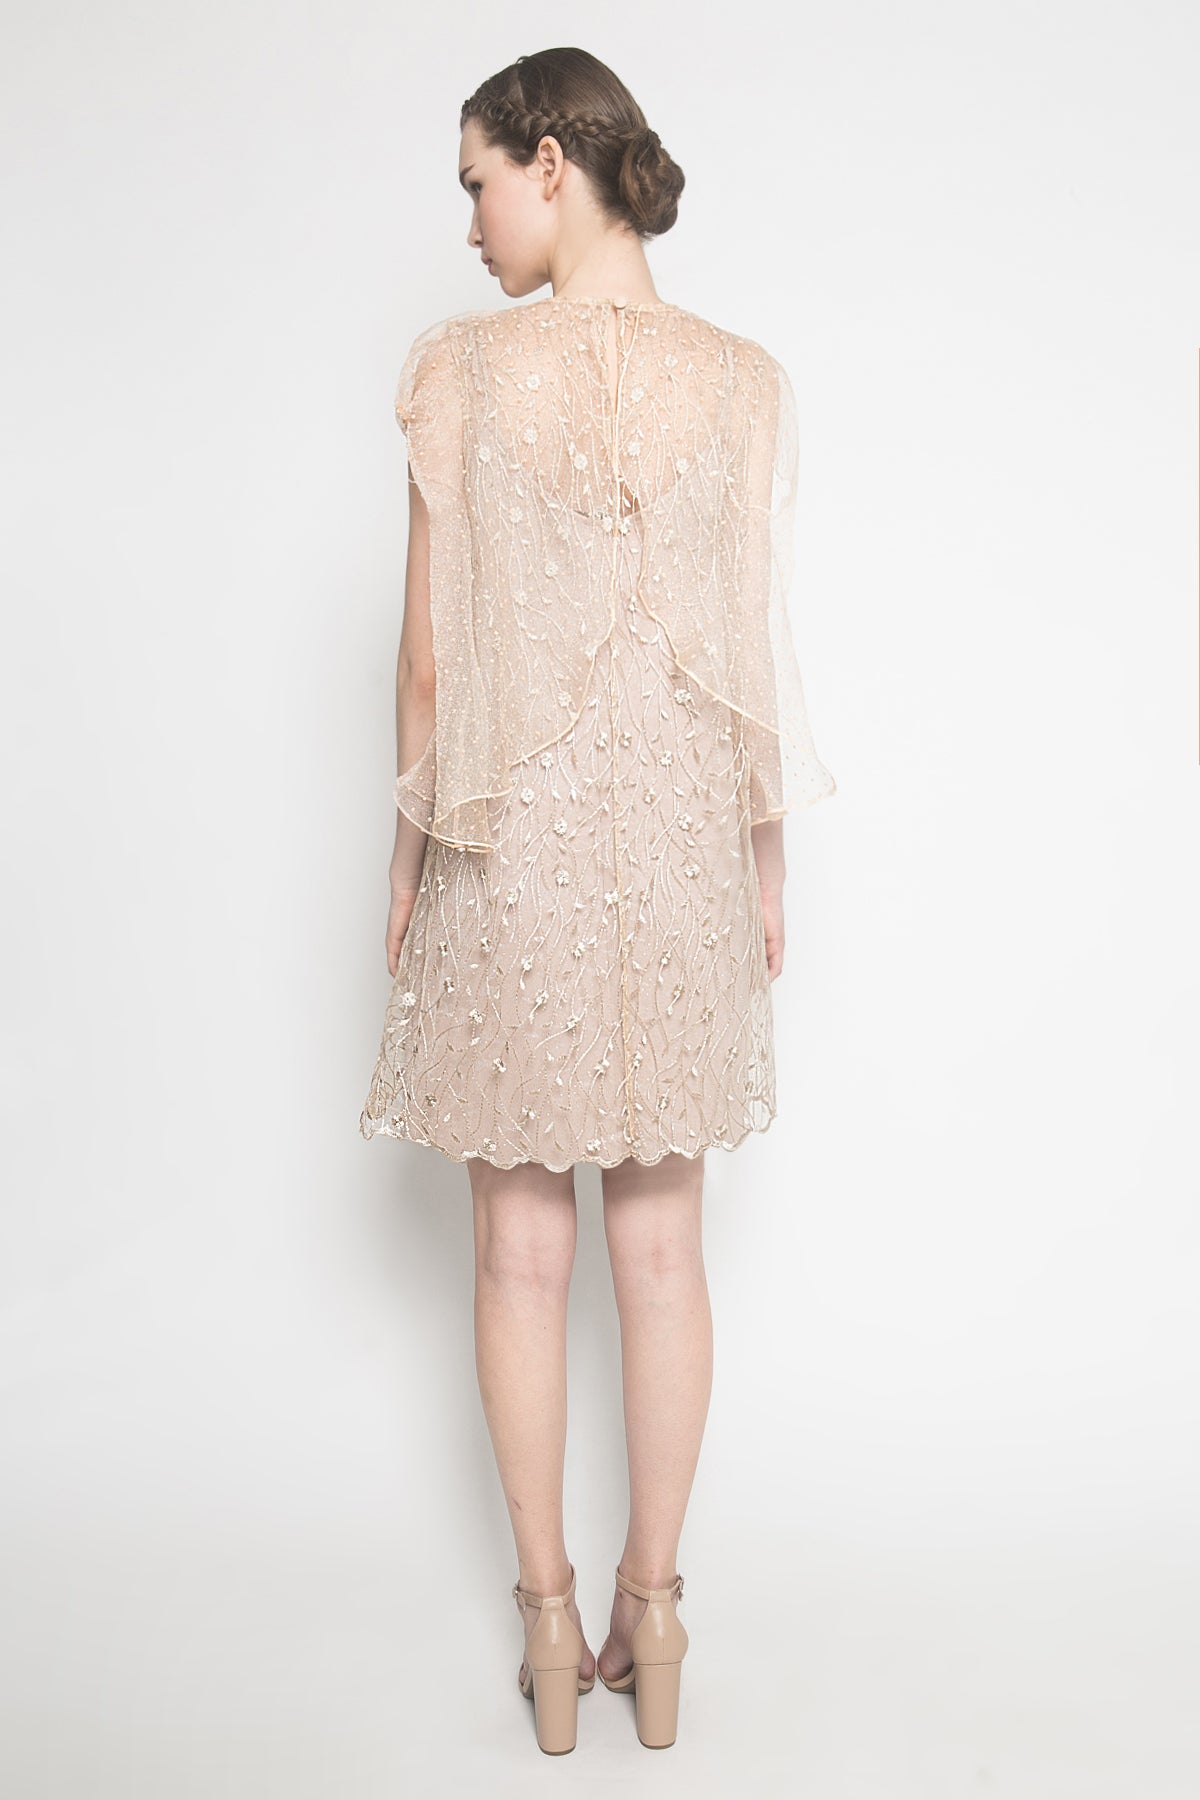 Peggy Dress in Creme